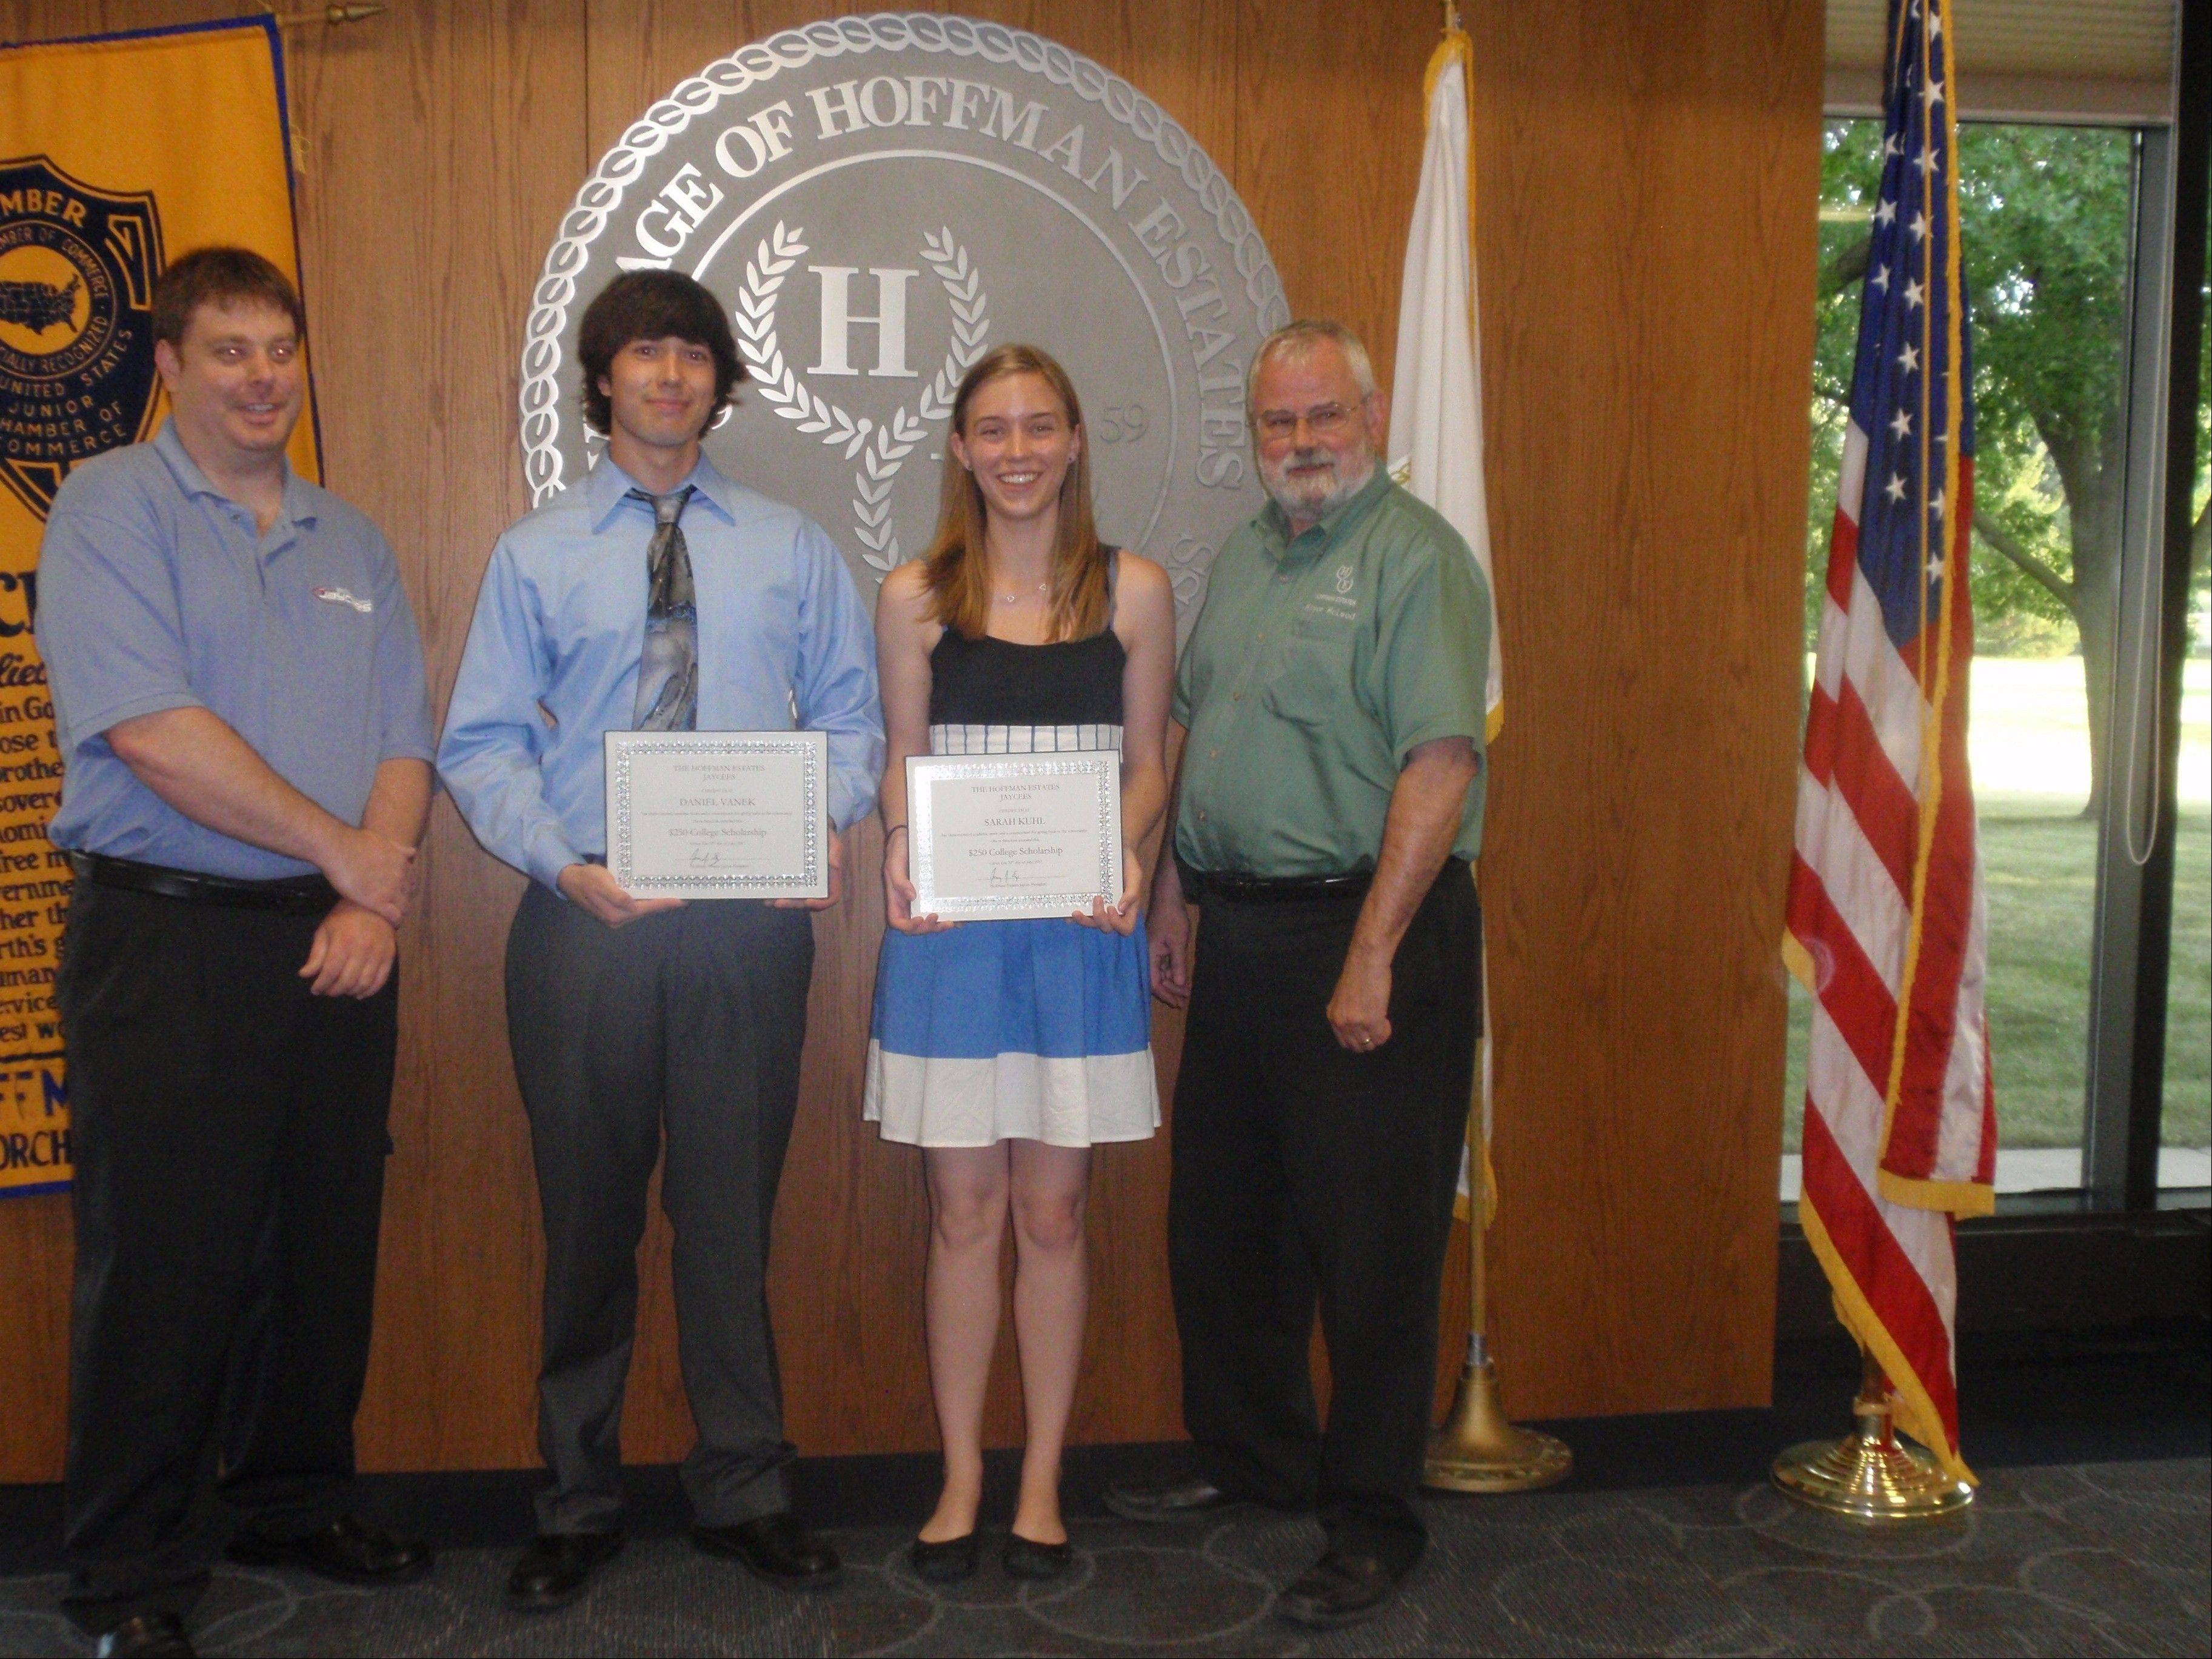 Pictured, from left, at the scholarship presentation are: Jaycee President Jeremy Ewing; Daniel Vanek; Sarah Kuhl; and Hoffman Estates Mayor Bill McLeod.